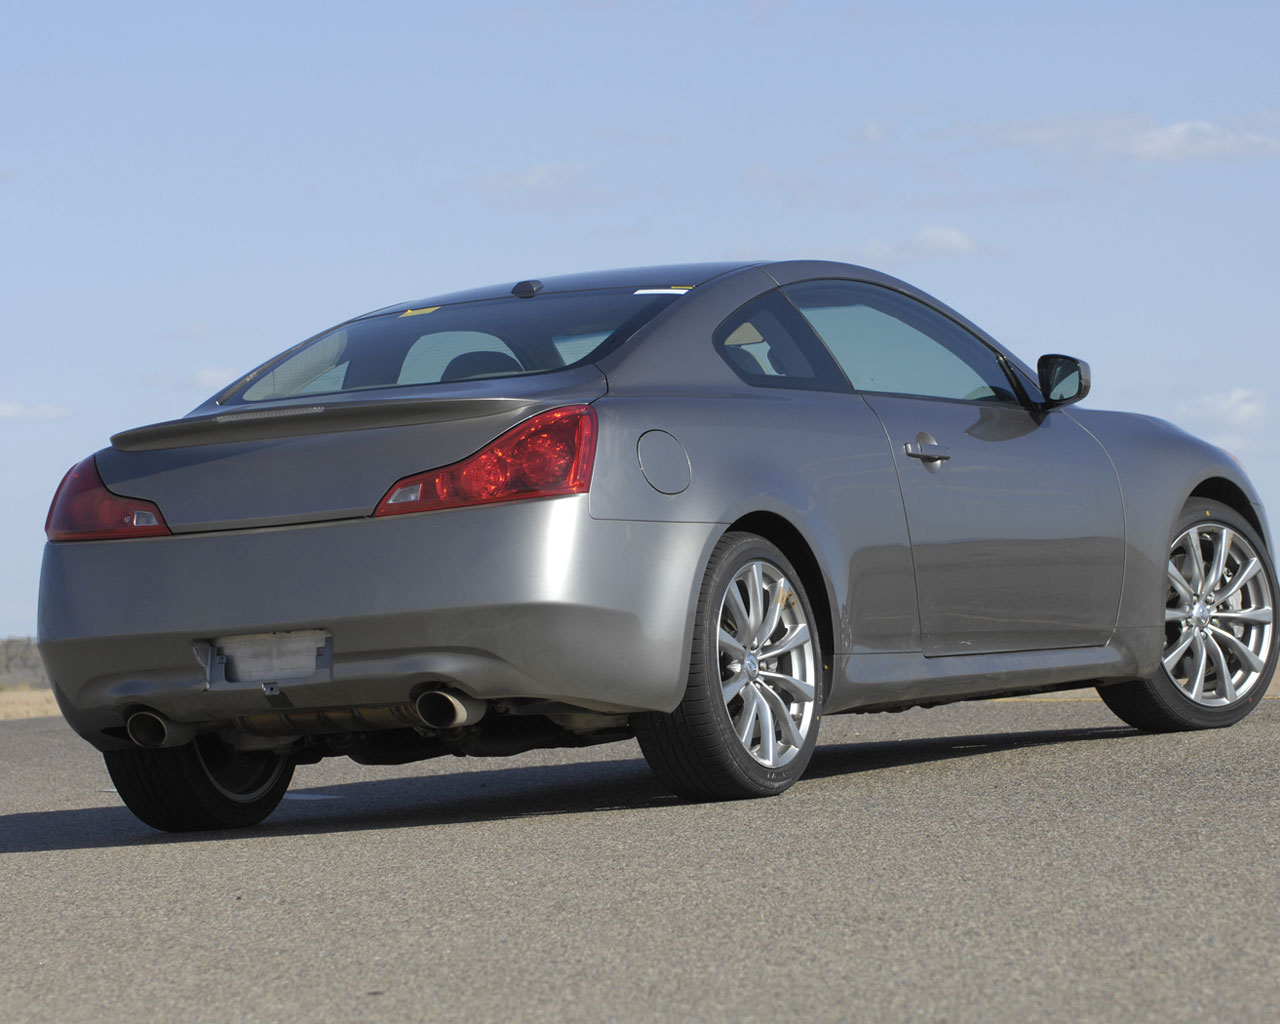 Acura Certified Pre Owned >> 2007 Infiniti G37 Coupe Photo Gallery - Autoblog